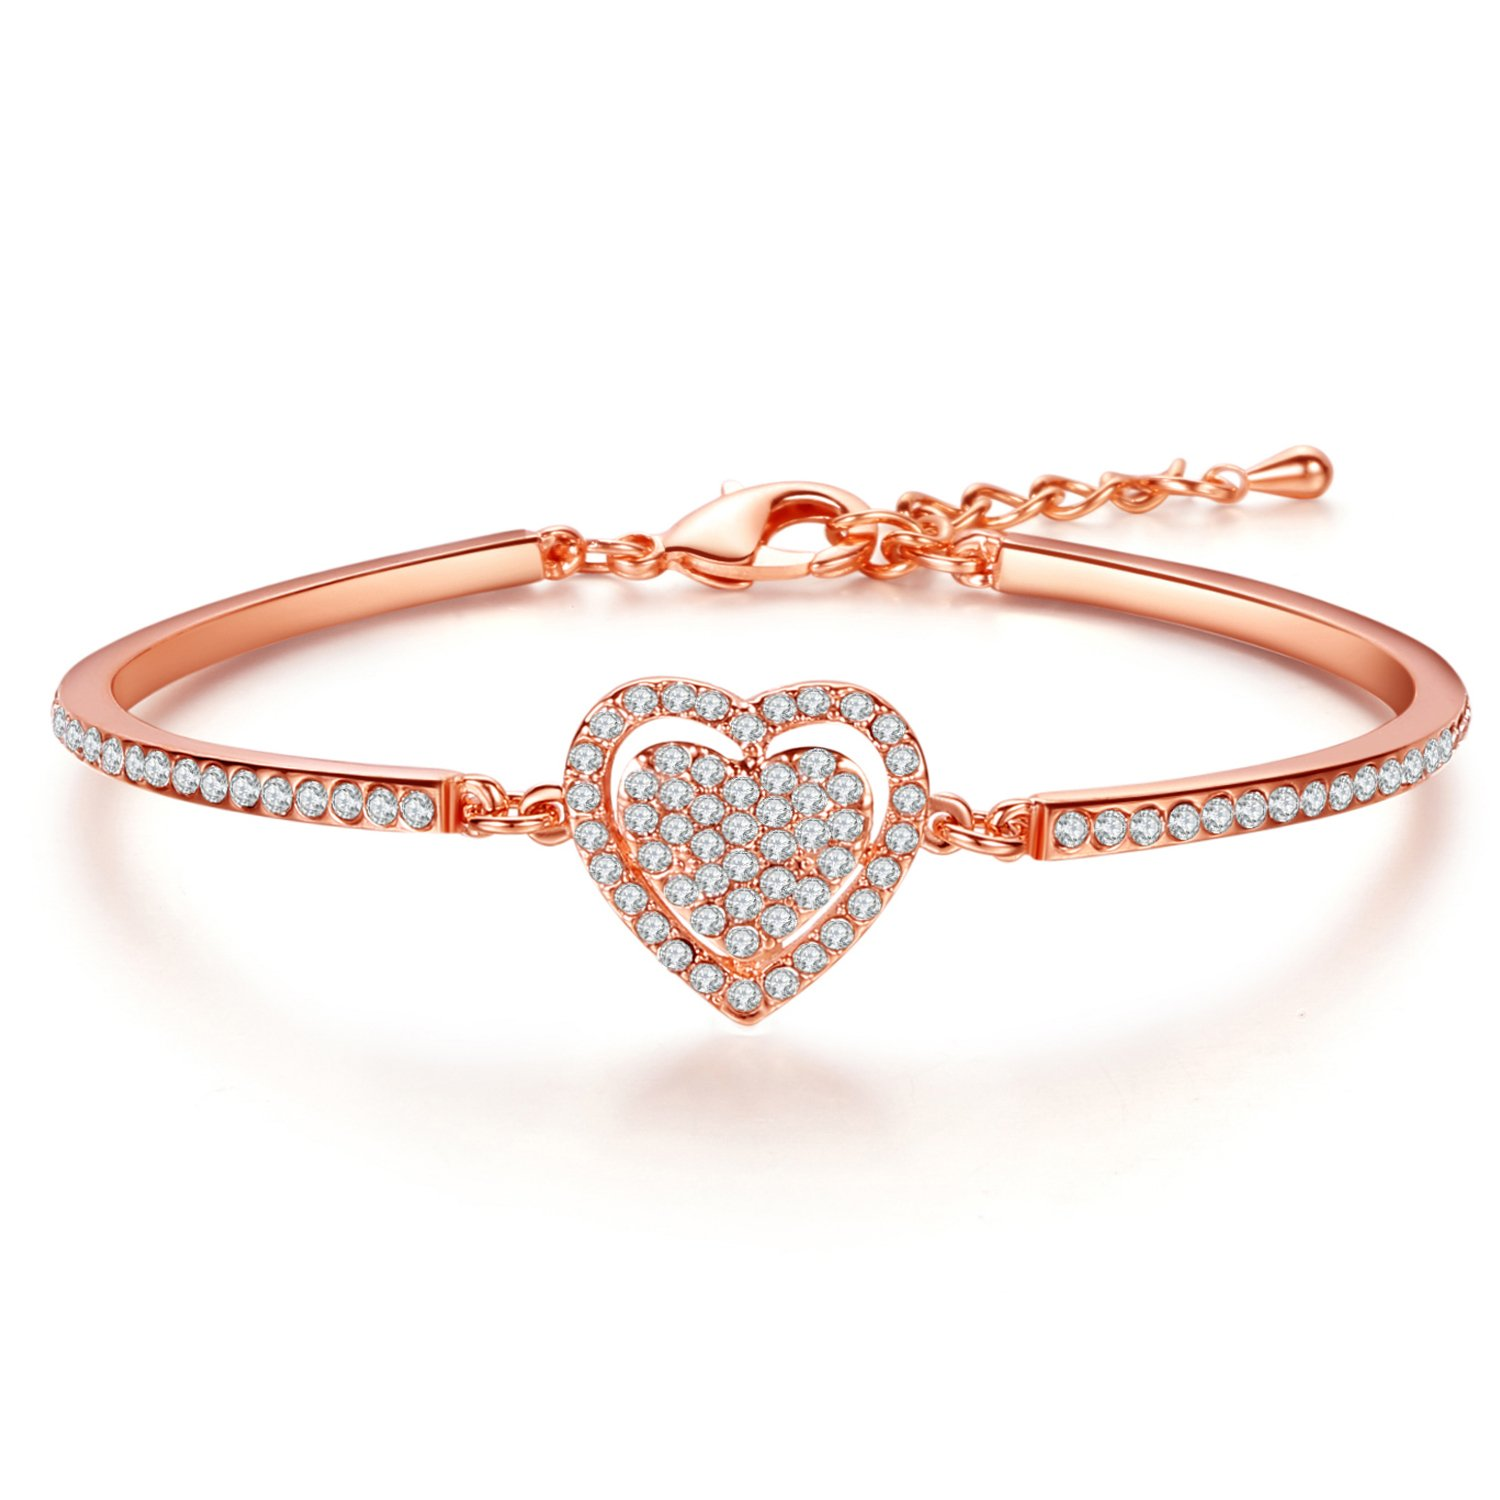 a718948a04bd J.Fée FINE JEWELLERY Sweetheart Rose Bracelet White Gold Plated   Rose Gold  Plated Swarovski Crystal Bangle - Gift for Her♥